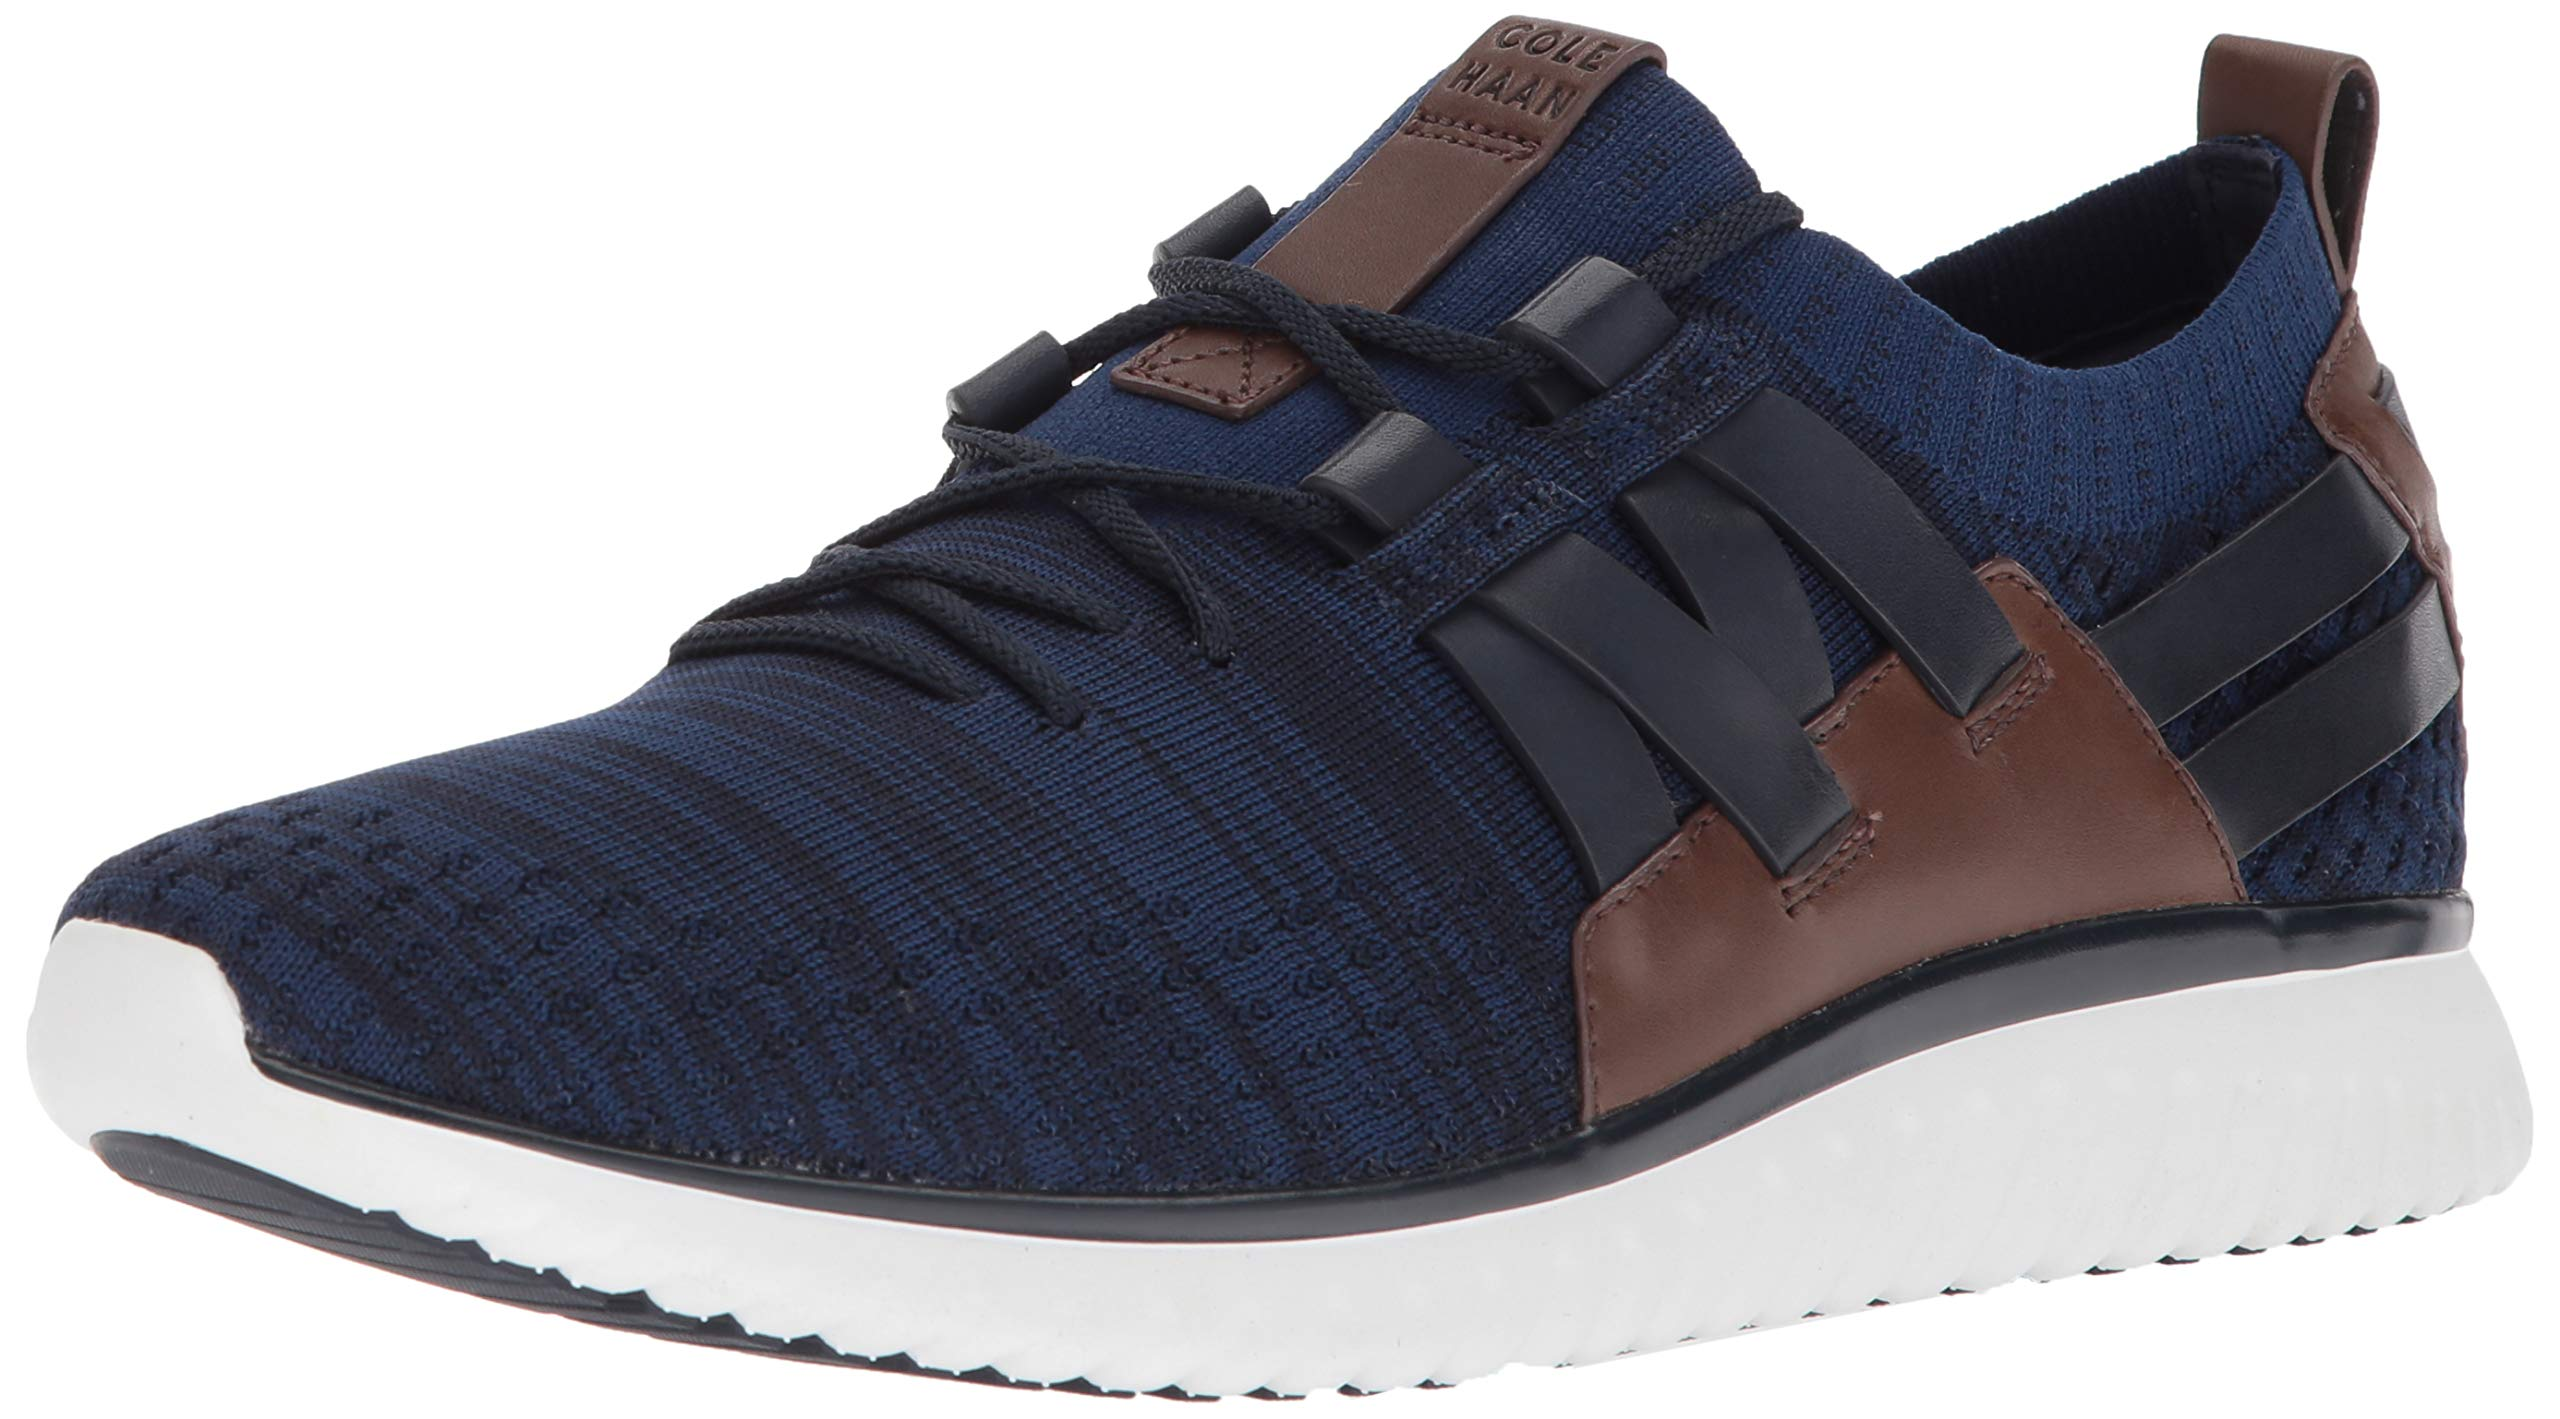 Cole Haan Men's Grand Motion Woven Stitchlite Sneaker, Navy Ink/Peony Knit/British Tan/Optic White 7.5 W US